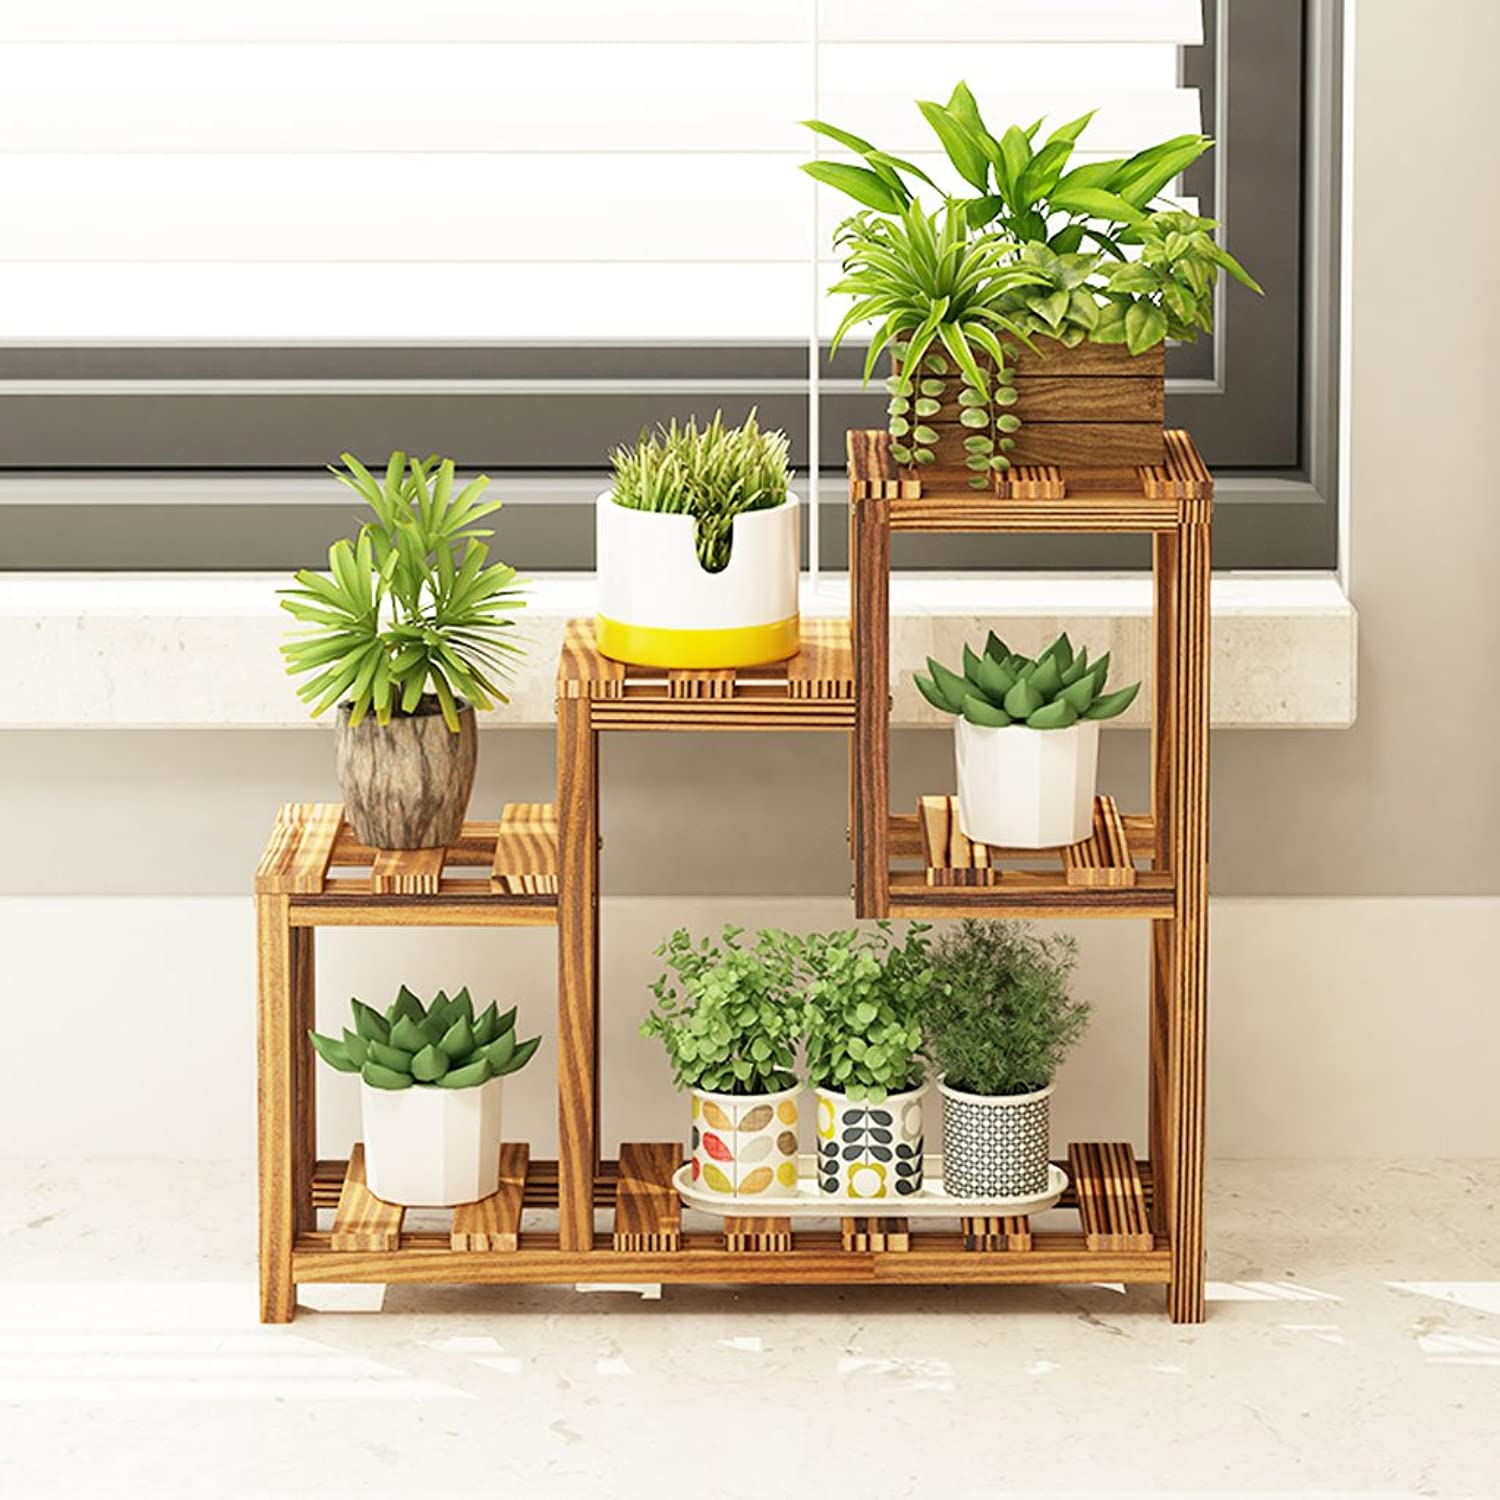 JKL-Flower Stand Creative Solid Wood Window Sill Fleshy Flower Stand Mini Bedroom Table Flower Table Top Shelf Storage Small Flower Stand